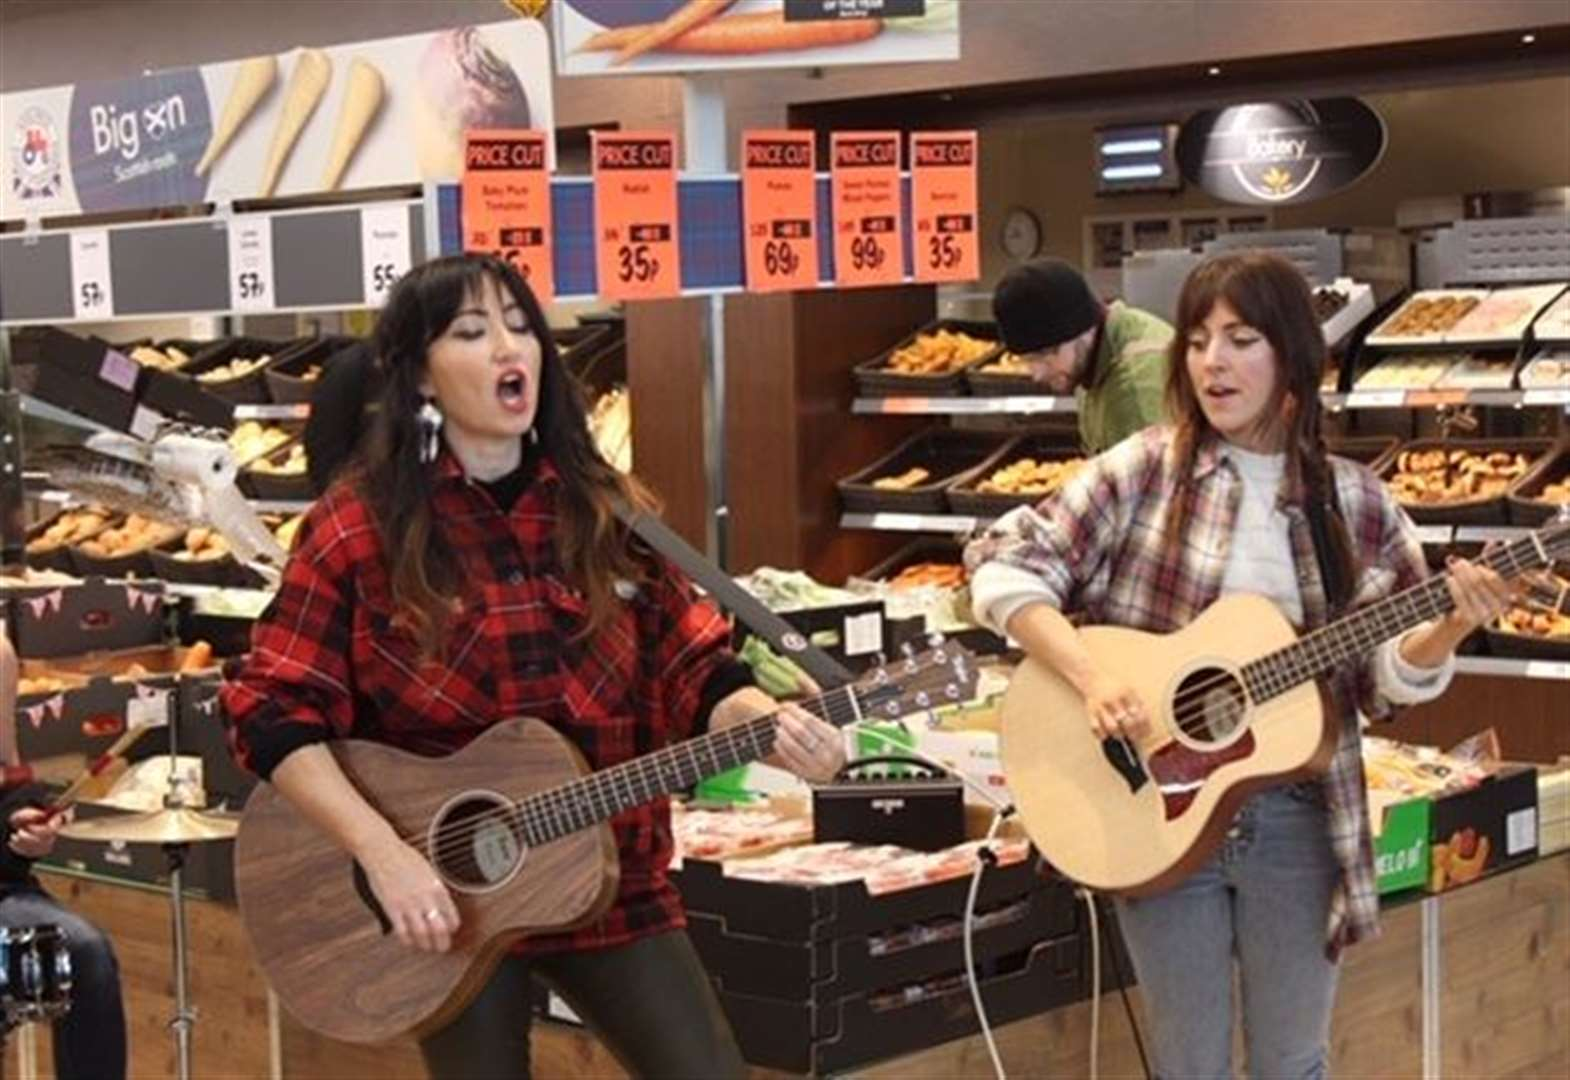 Shoppers treated to gig from award winning Scottish star